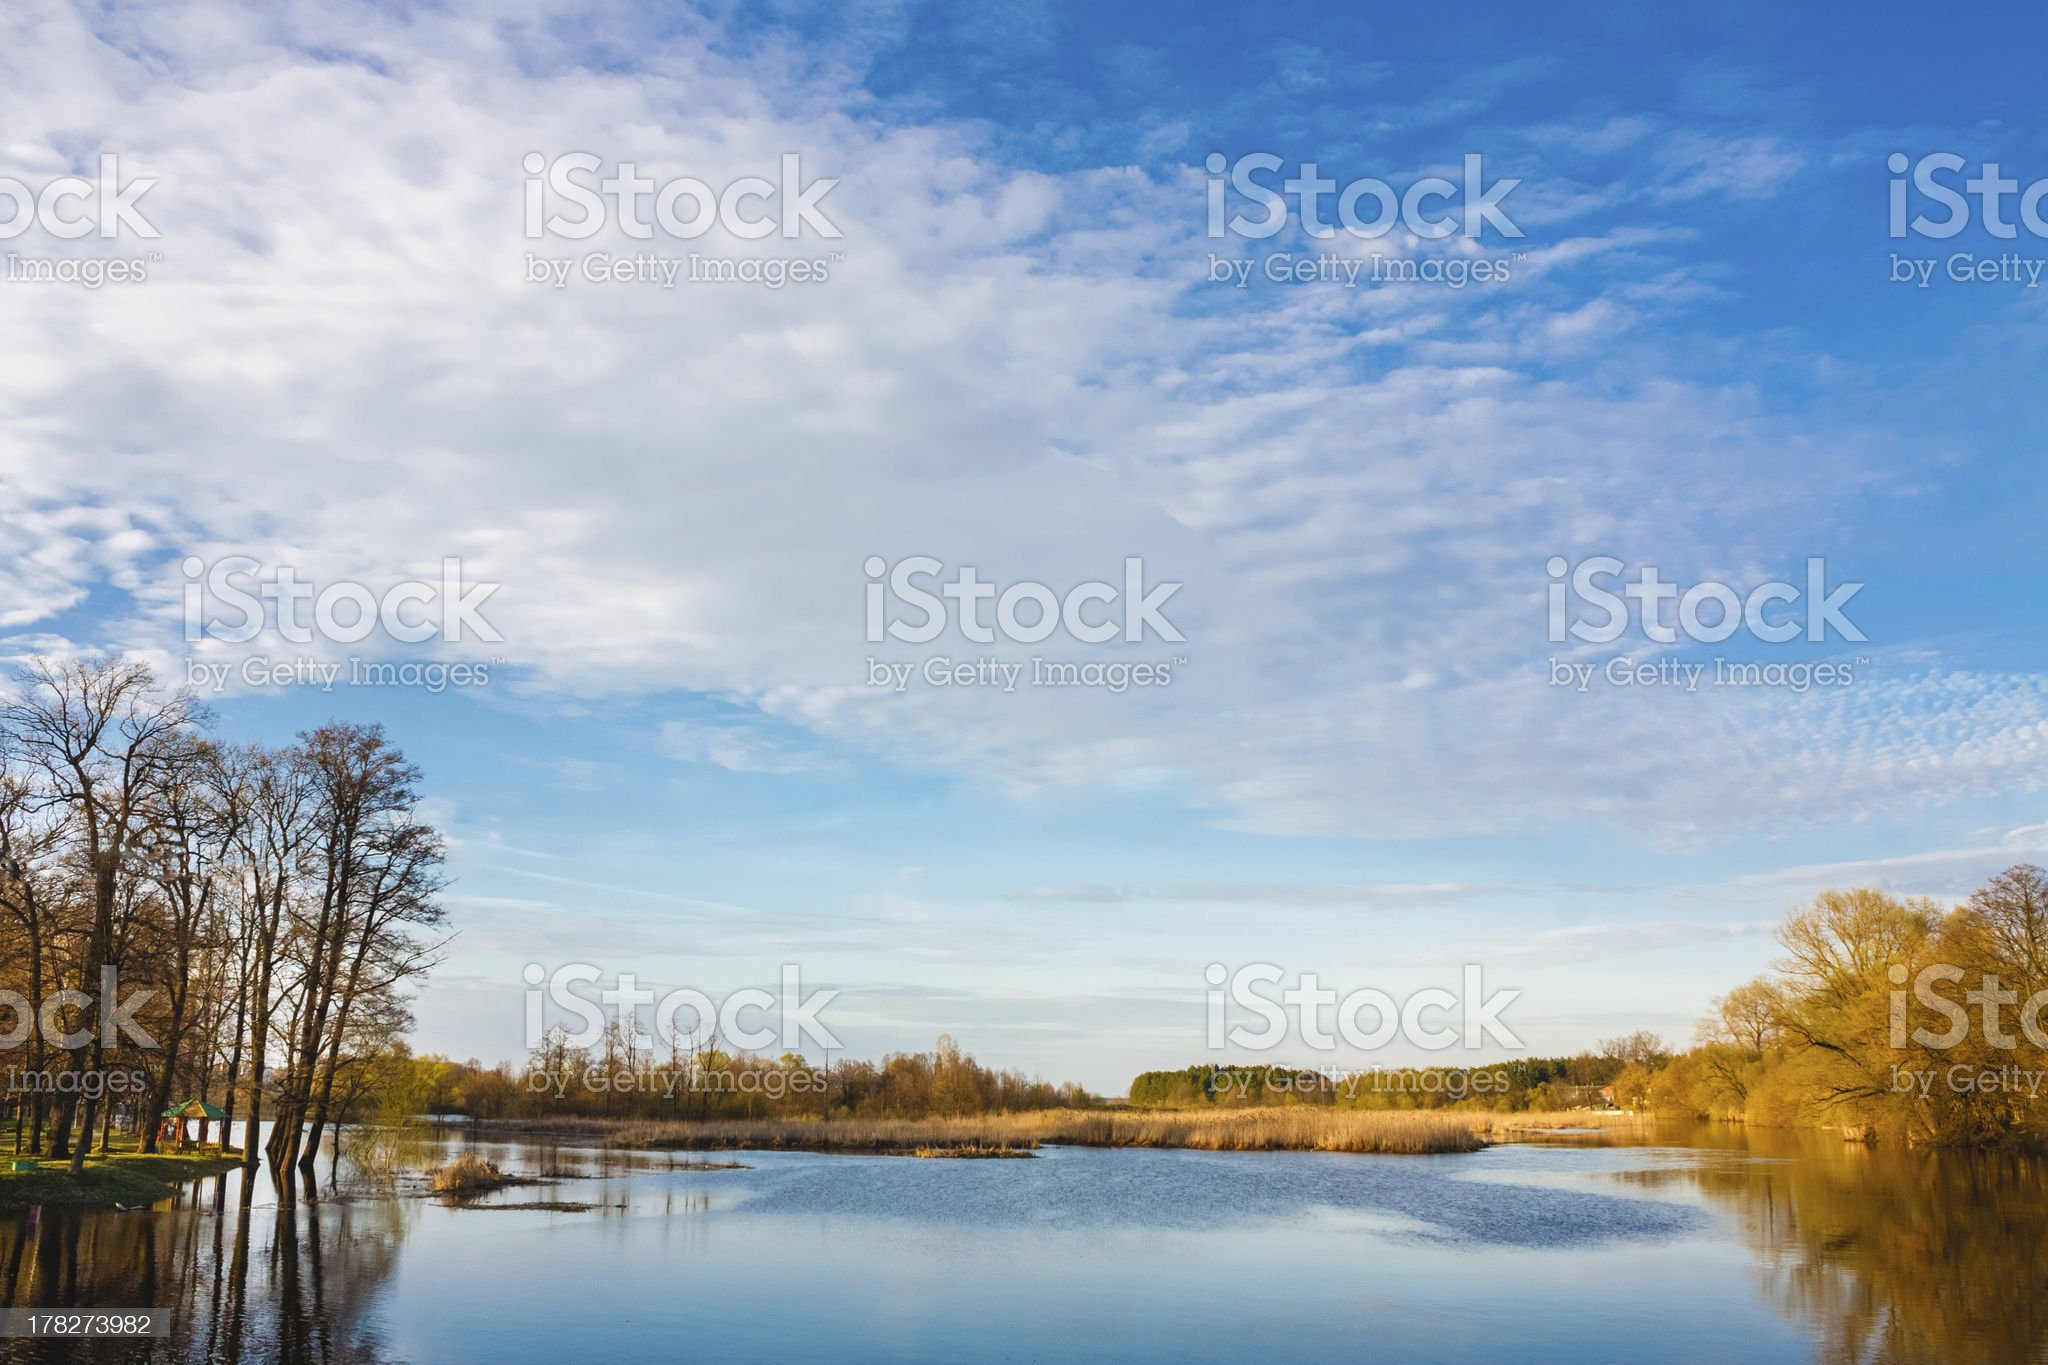 Sky And Clouds Reflection On Lake royalty-free stock photo